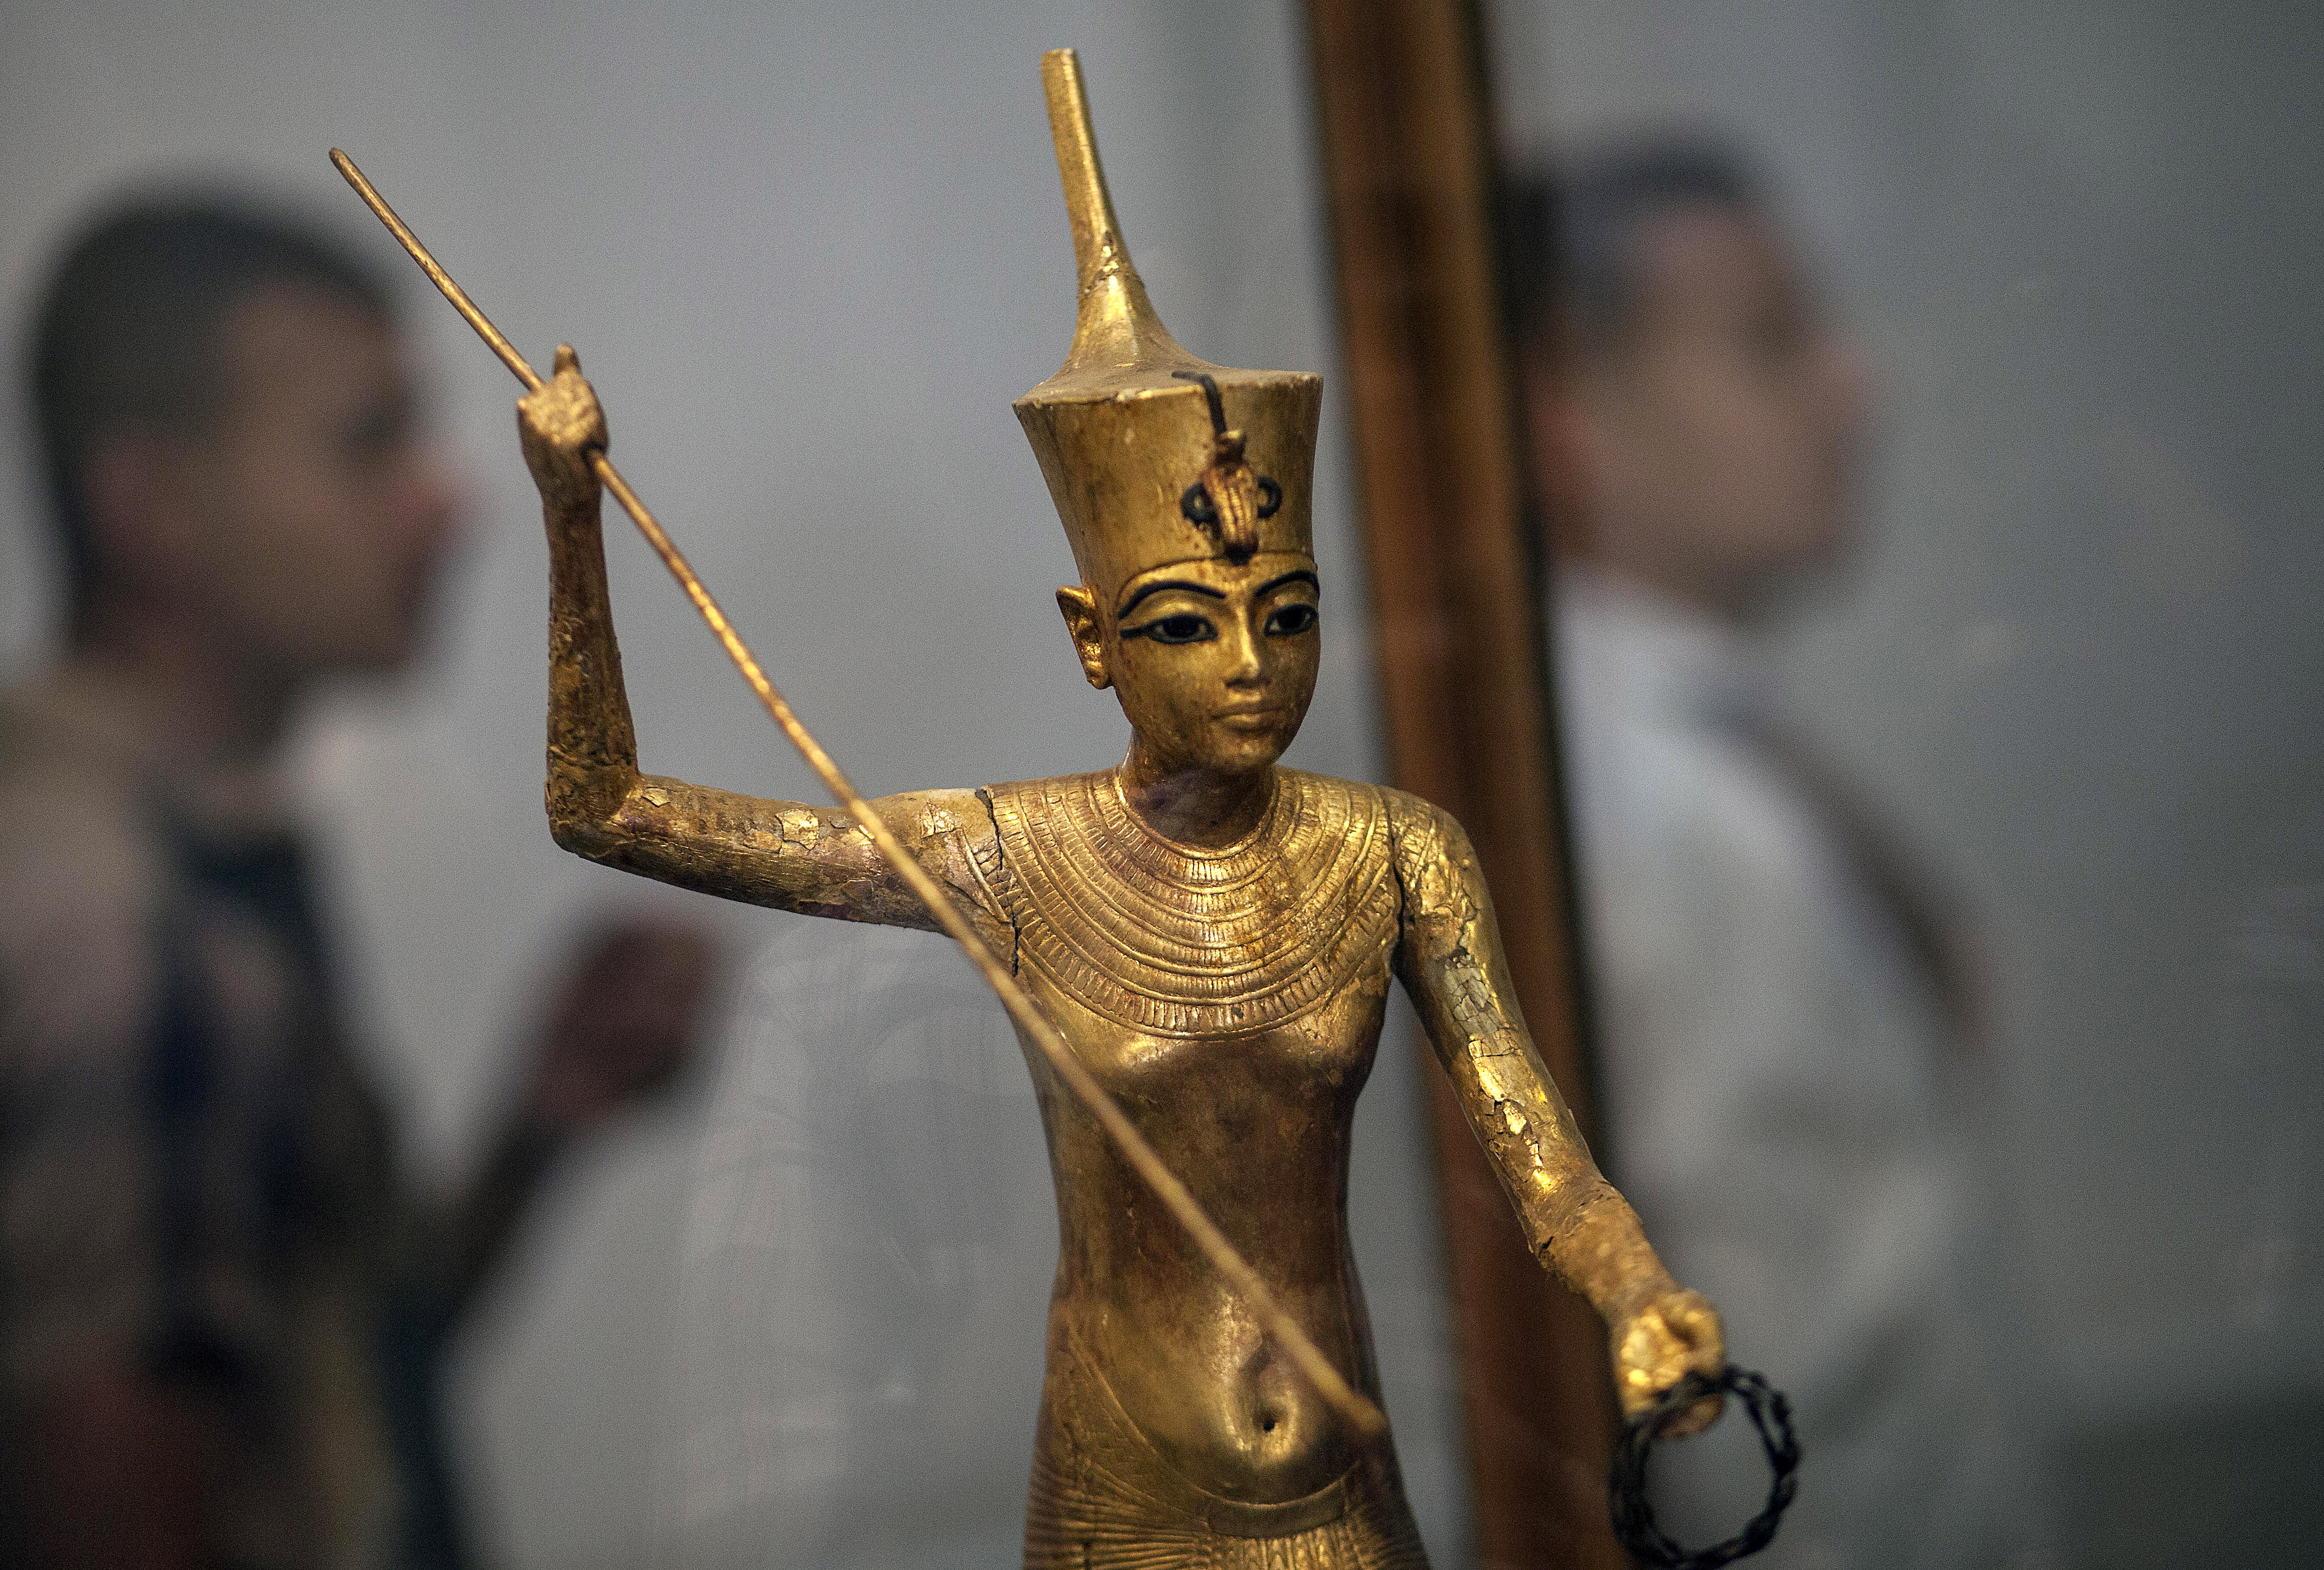 A picture taken on Sept. 30, 2013, shows a statue of the 18th Dynasty King Tutankhamun displayed at the Egyptian Museum in Cairo